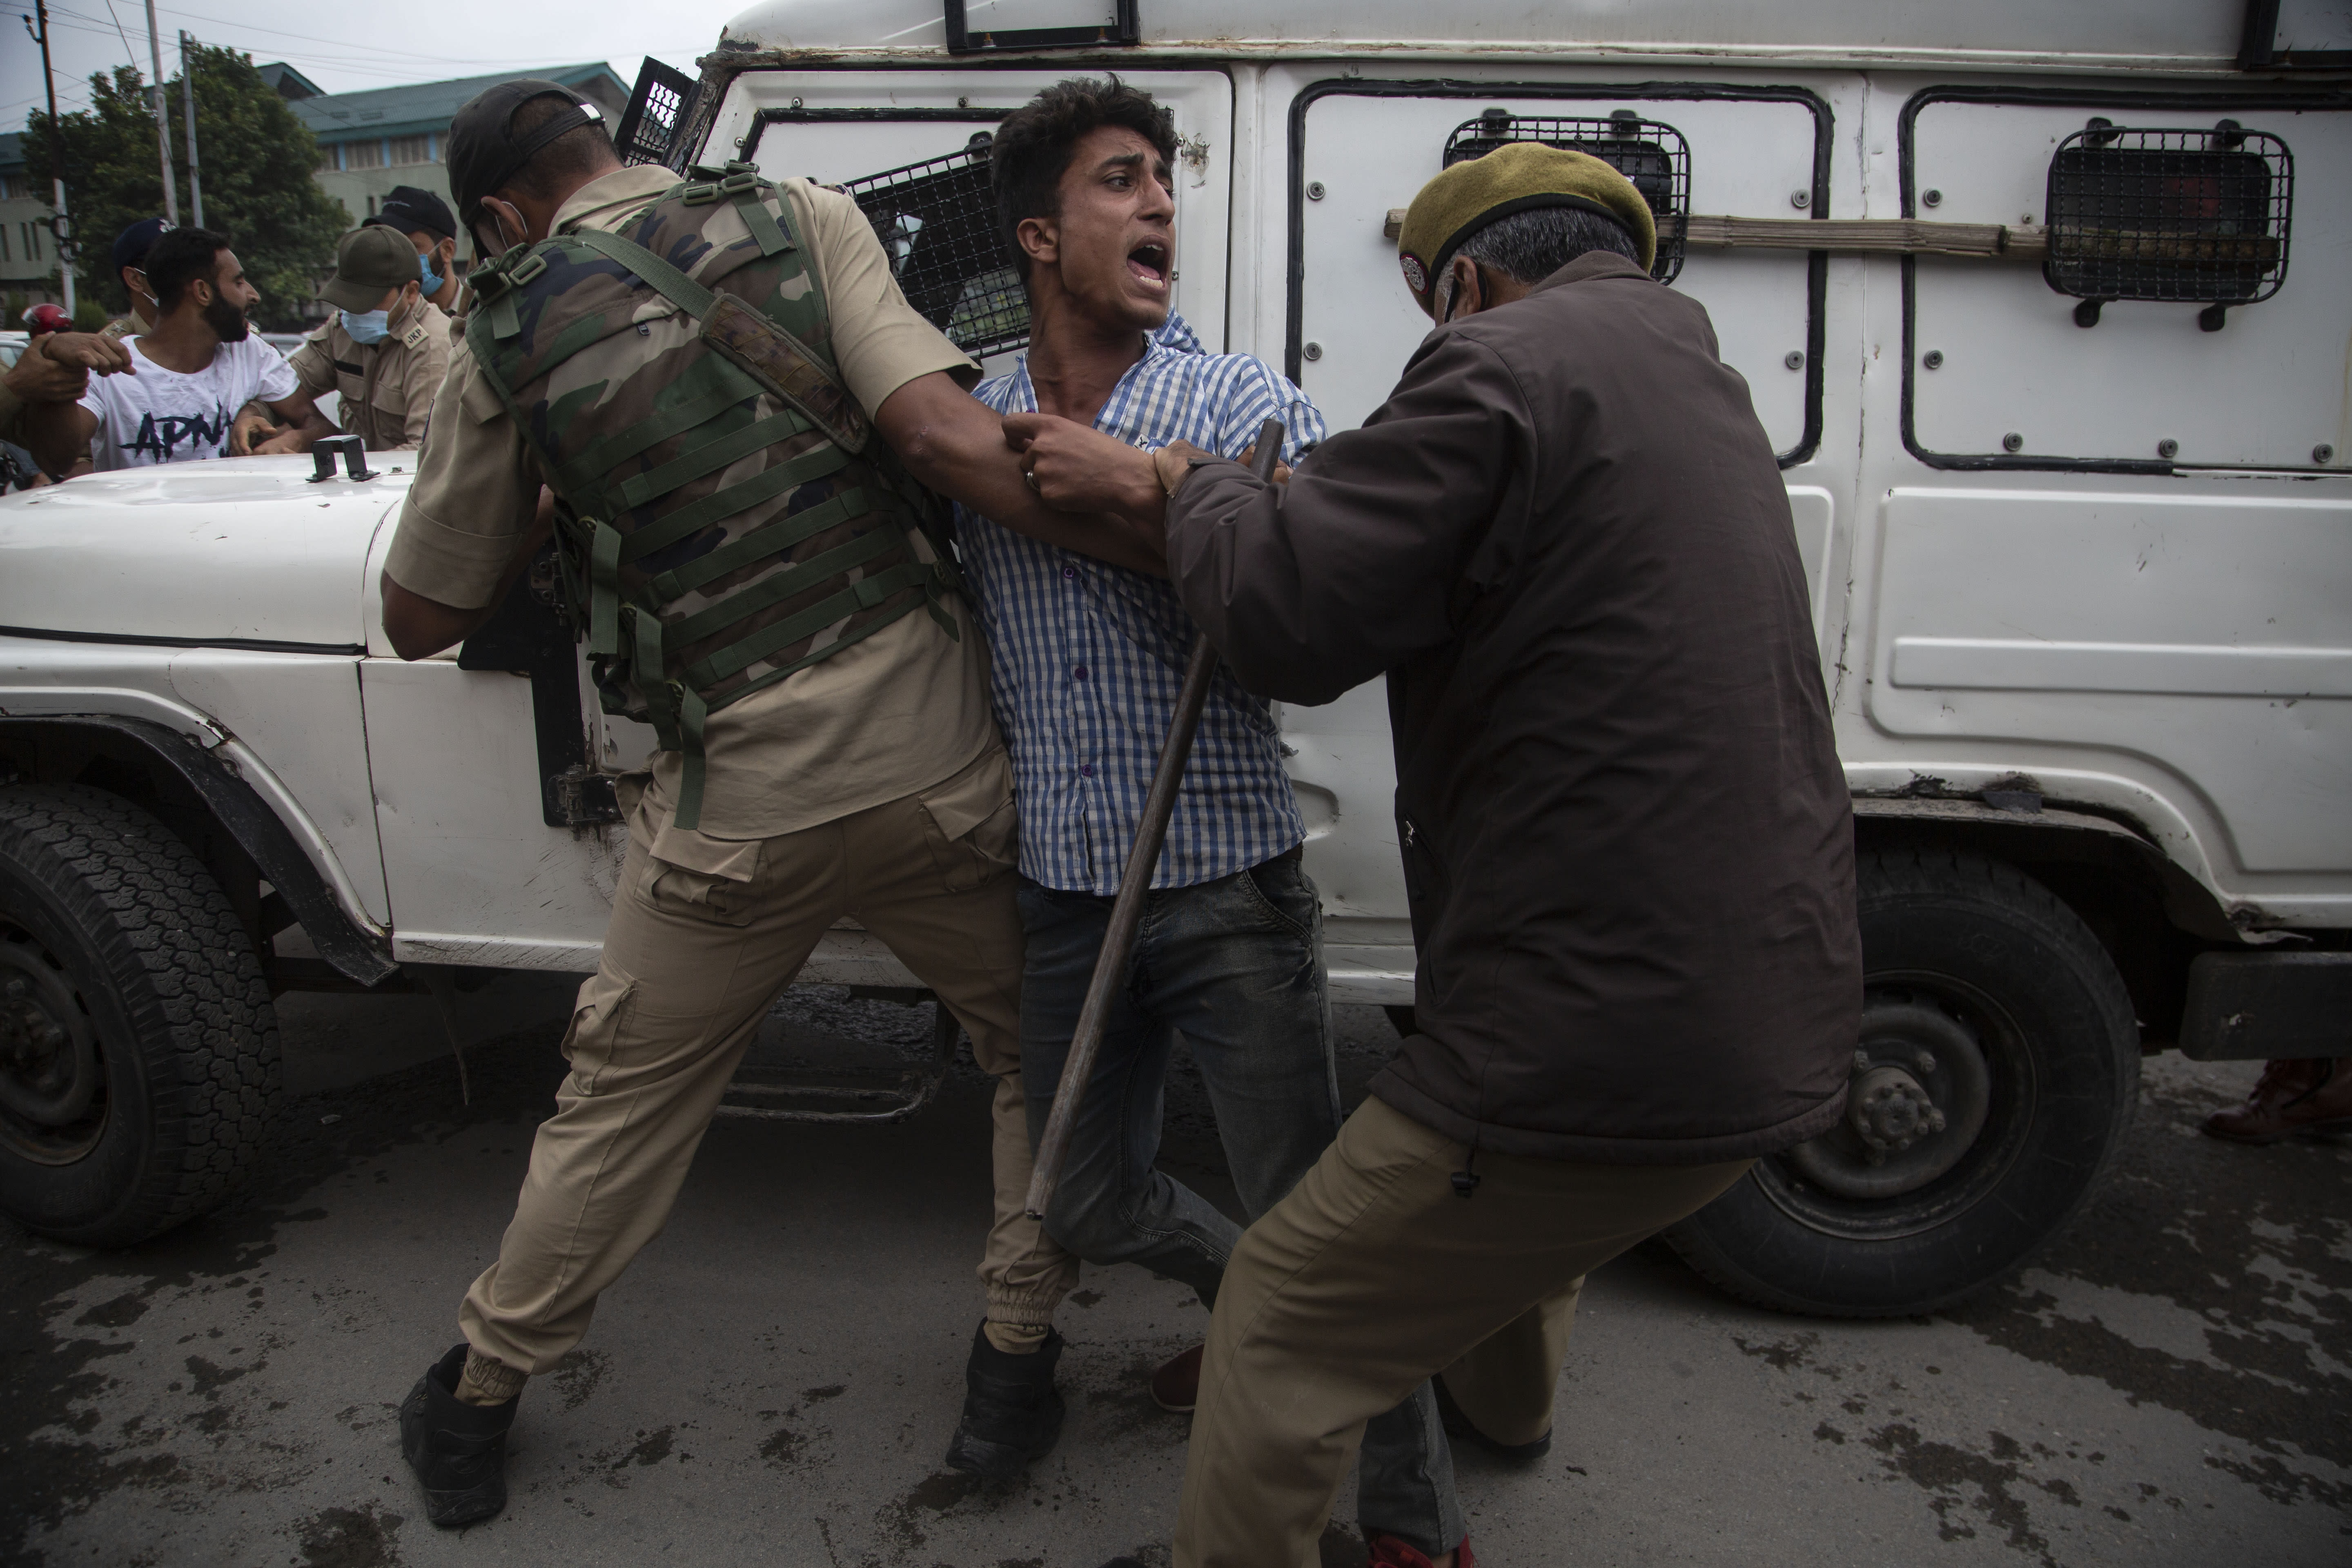 Indian policemen detain a Kashmiri Shiite Muslim as he attempts with others to take out a religious procession in Srinagar, Indian controlled Kashmir, Friday, Aug. 28, 2020. Police and paramilitary soldiers on Friday detained dozens of Muslims participating in religious processions in the Indian portion of Kashmir. Authorities had imposed restrictions in parts of Srinagar, the region's main city, to prevent gatherings marking Muharram from developing into anti-India protests. (AP Photo/Mukhtar Khan)